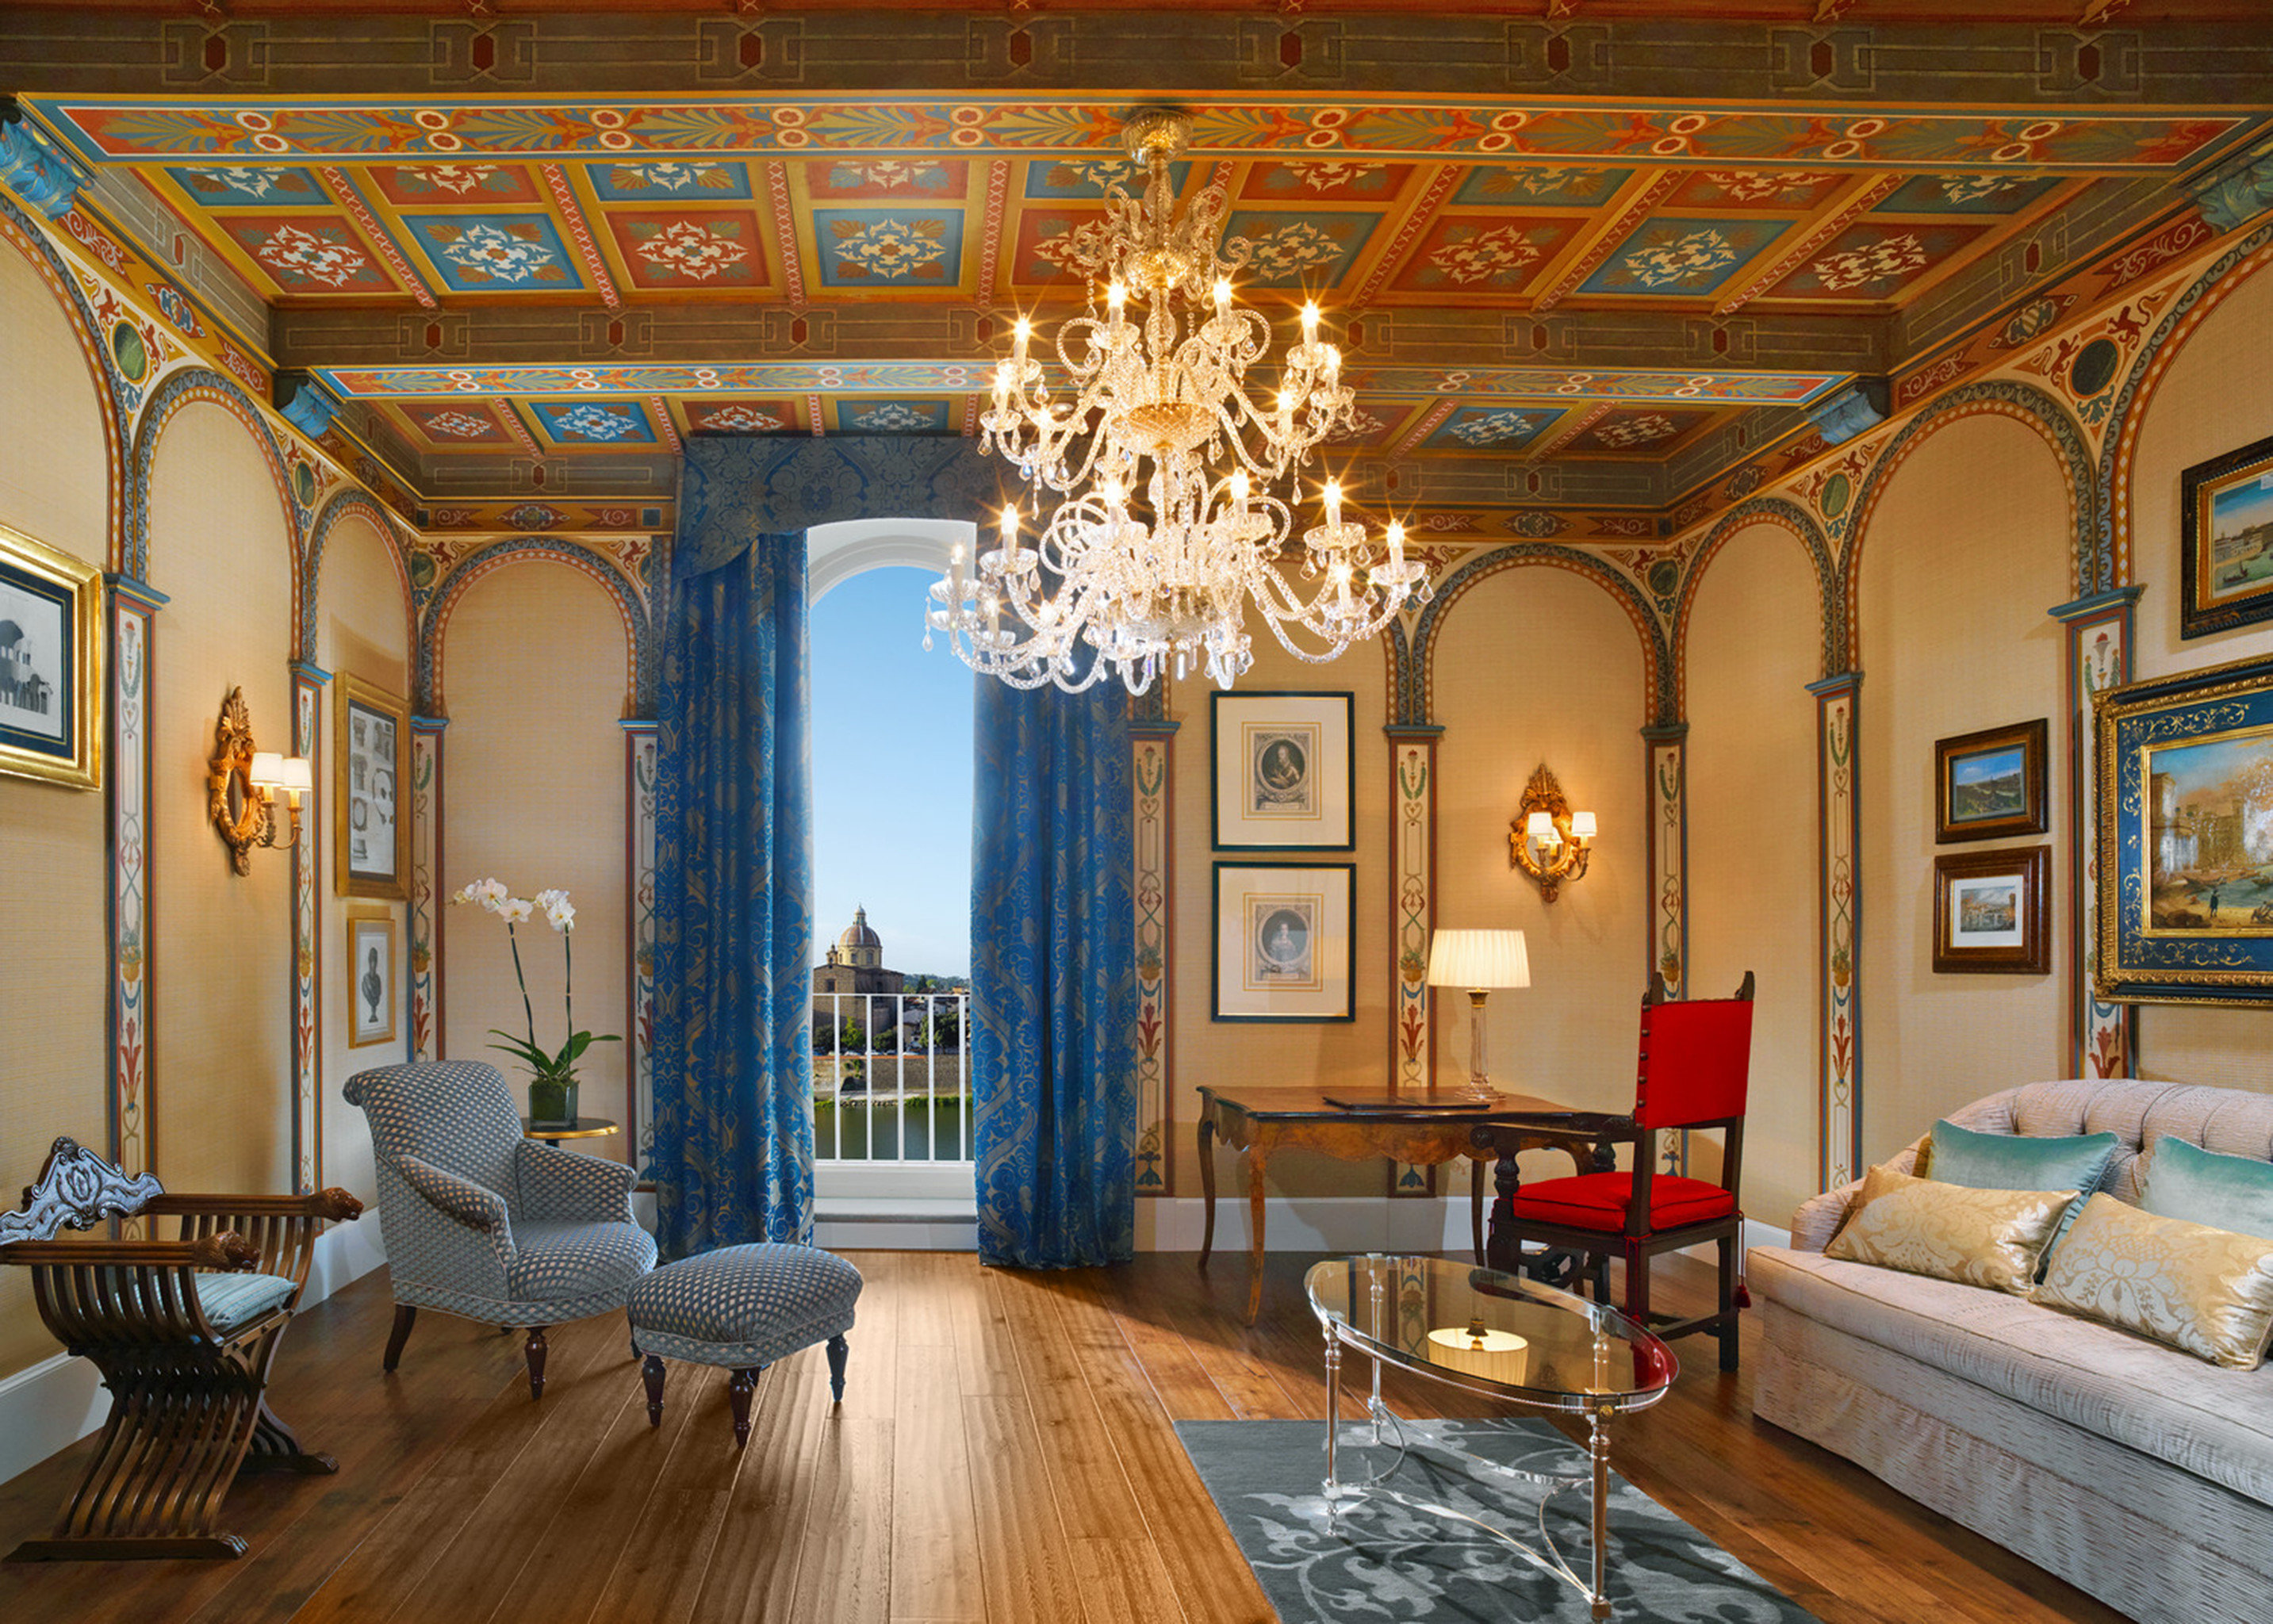 Elegant Florence Historic Hotels Italy Living Luxury Suite Trip Ideas indoor wall room floor property estate living room ceiling home interior design mansion Lobby real estate palace decorated furniture several